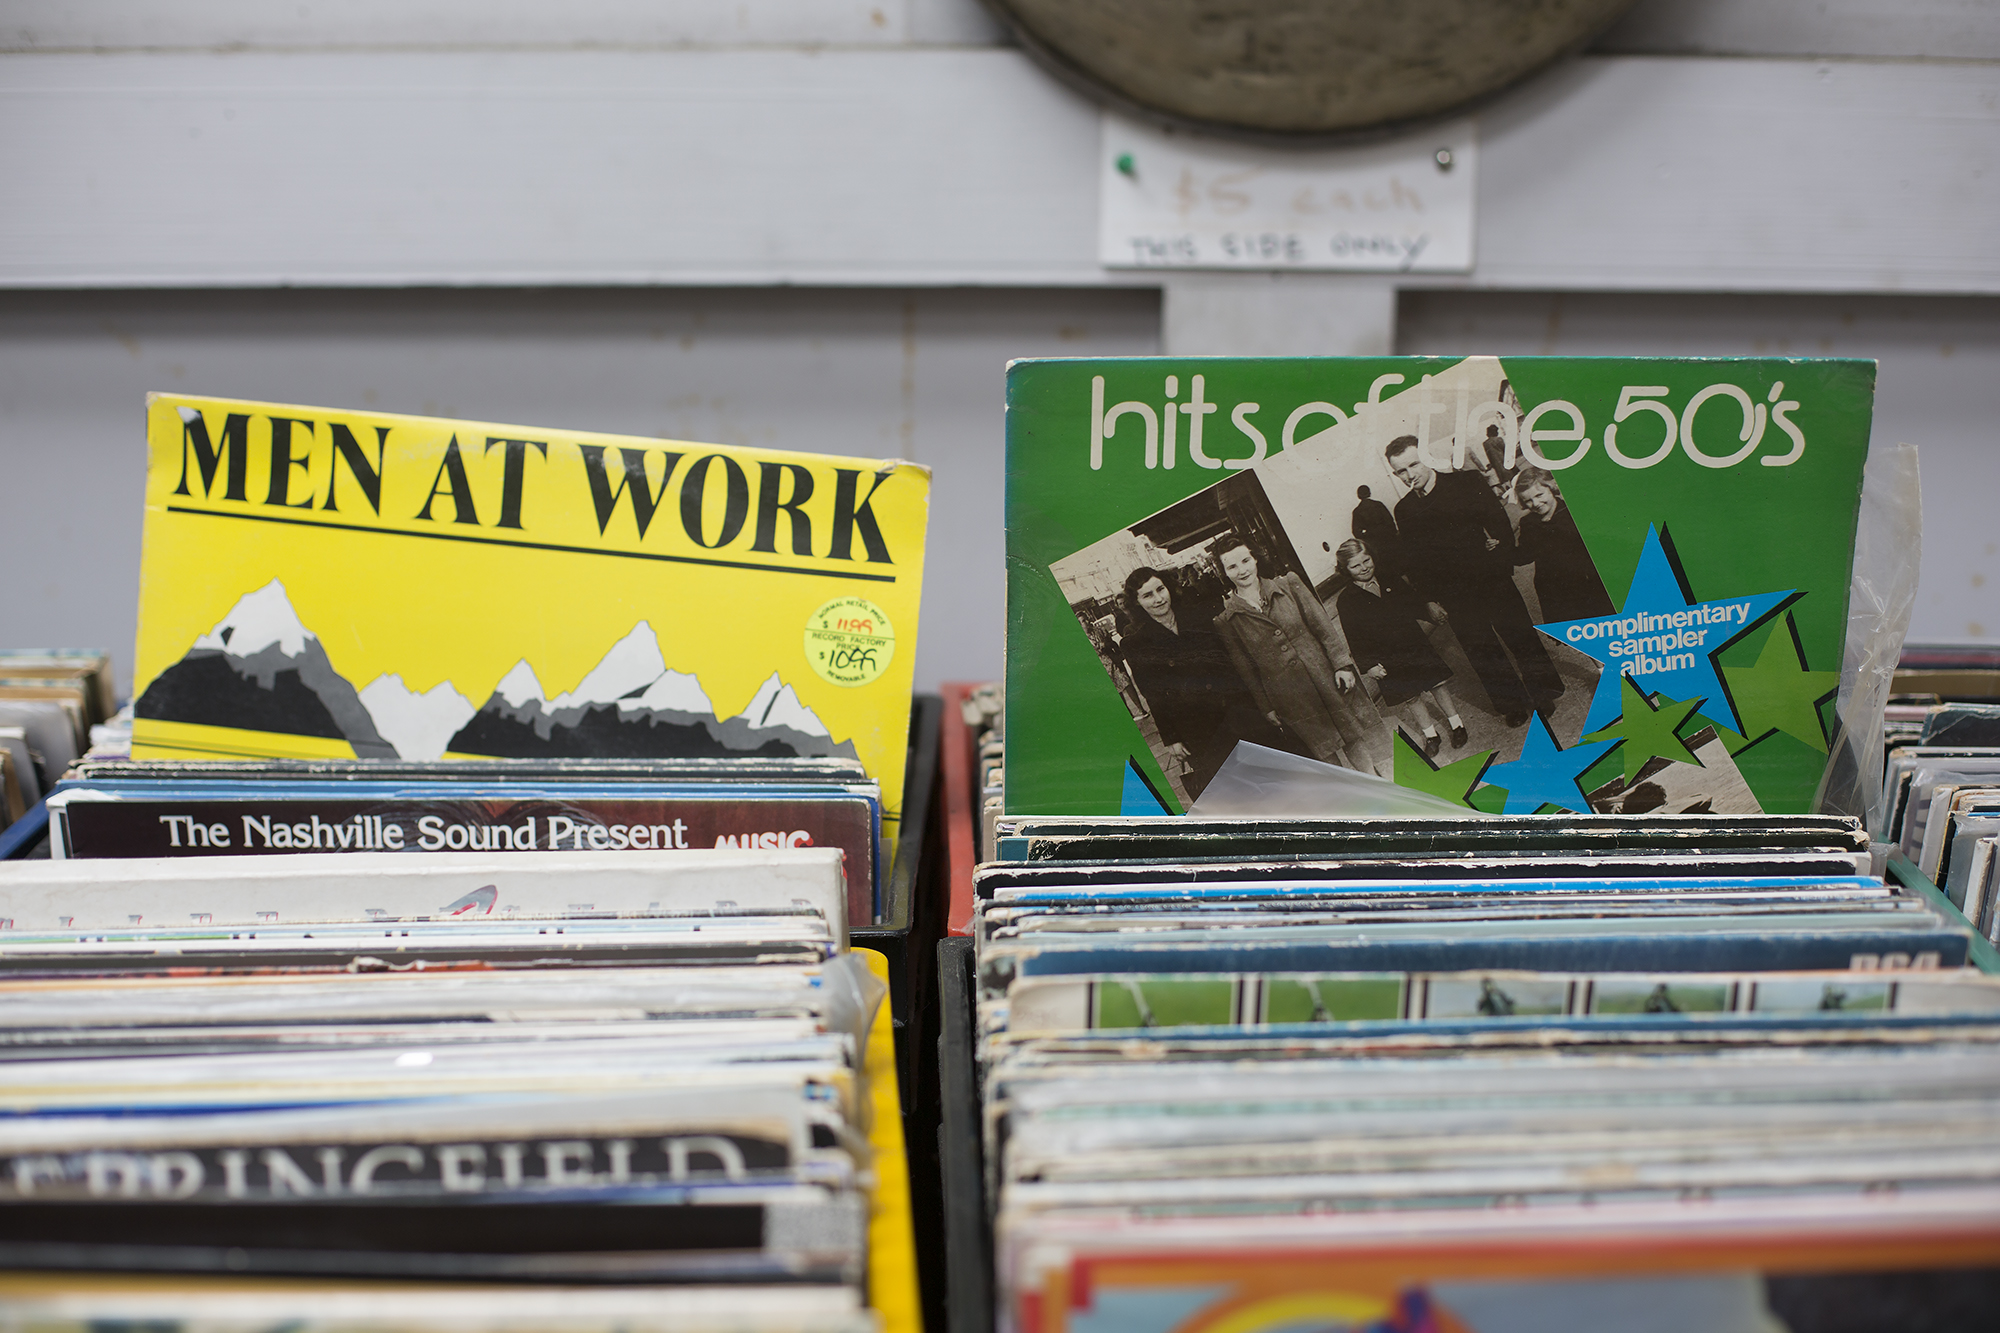 There is an assortment of popular vinyl records out the back, hits of the 1950s & Men At Work on display here.